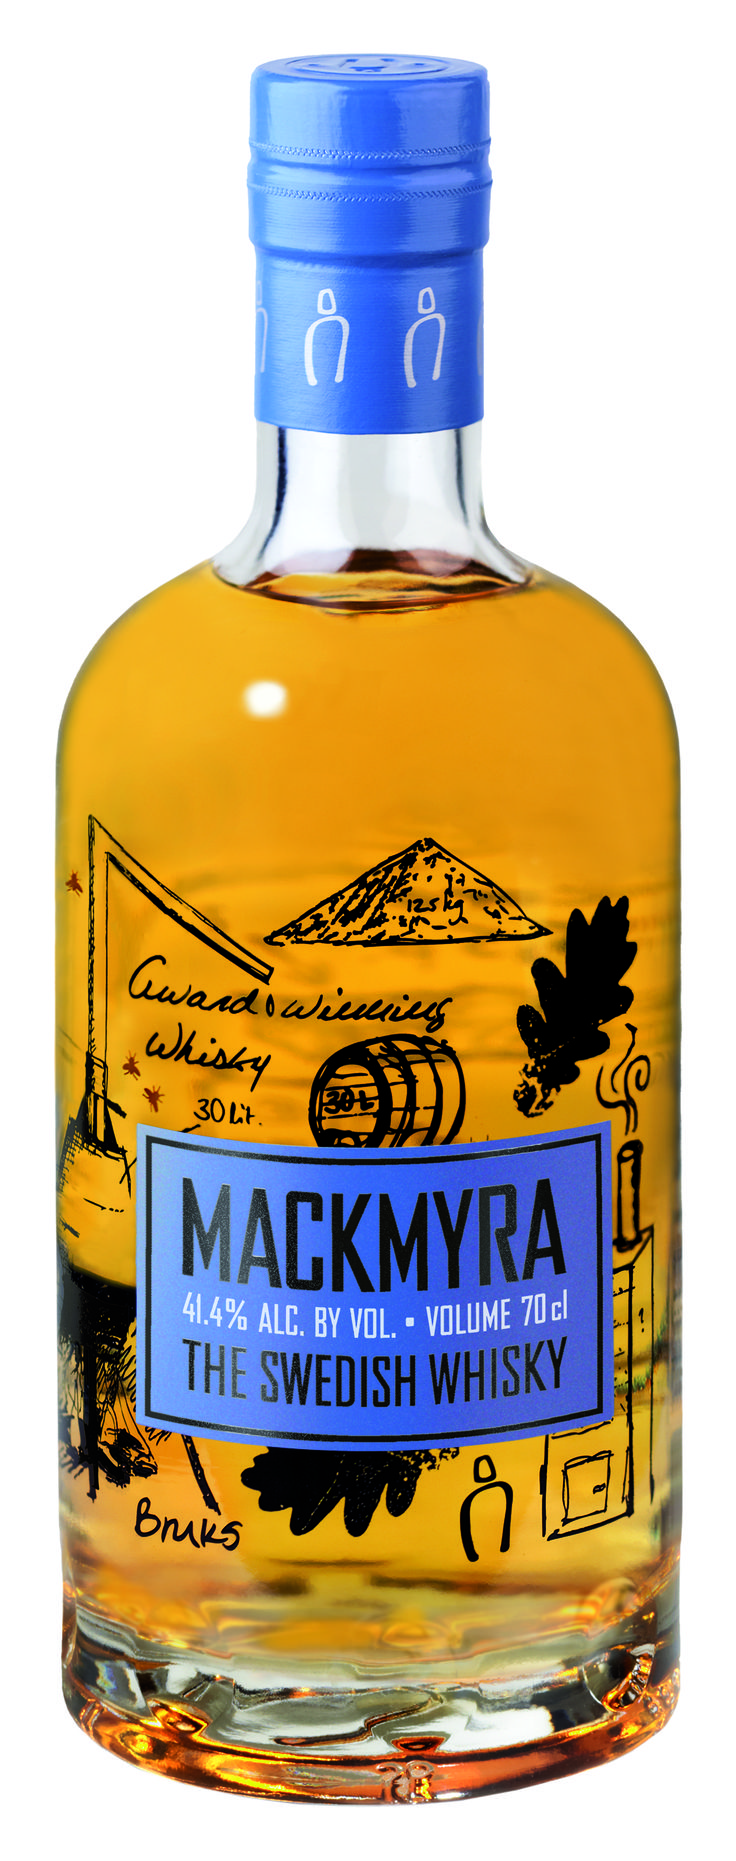 Mackmyra Swedish whisky, hand-drawn illustrations and a simple label